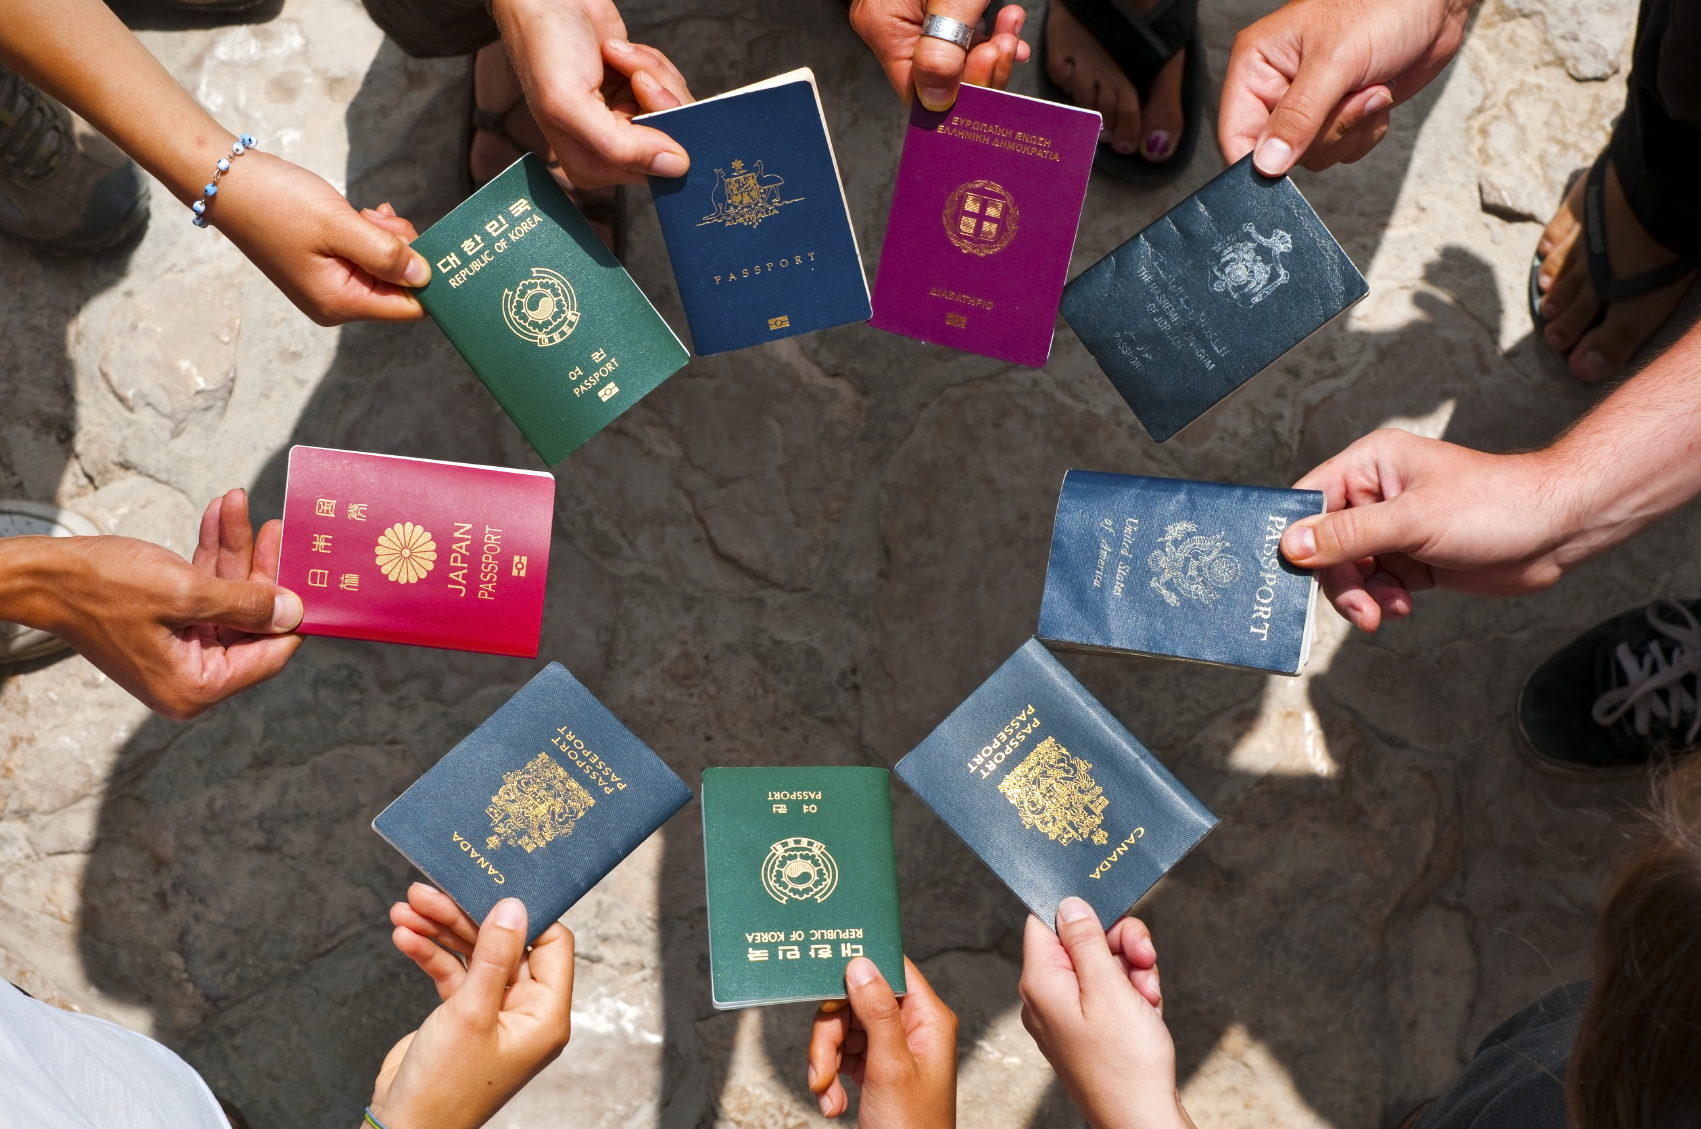 passports from around the world being presented in a circle